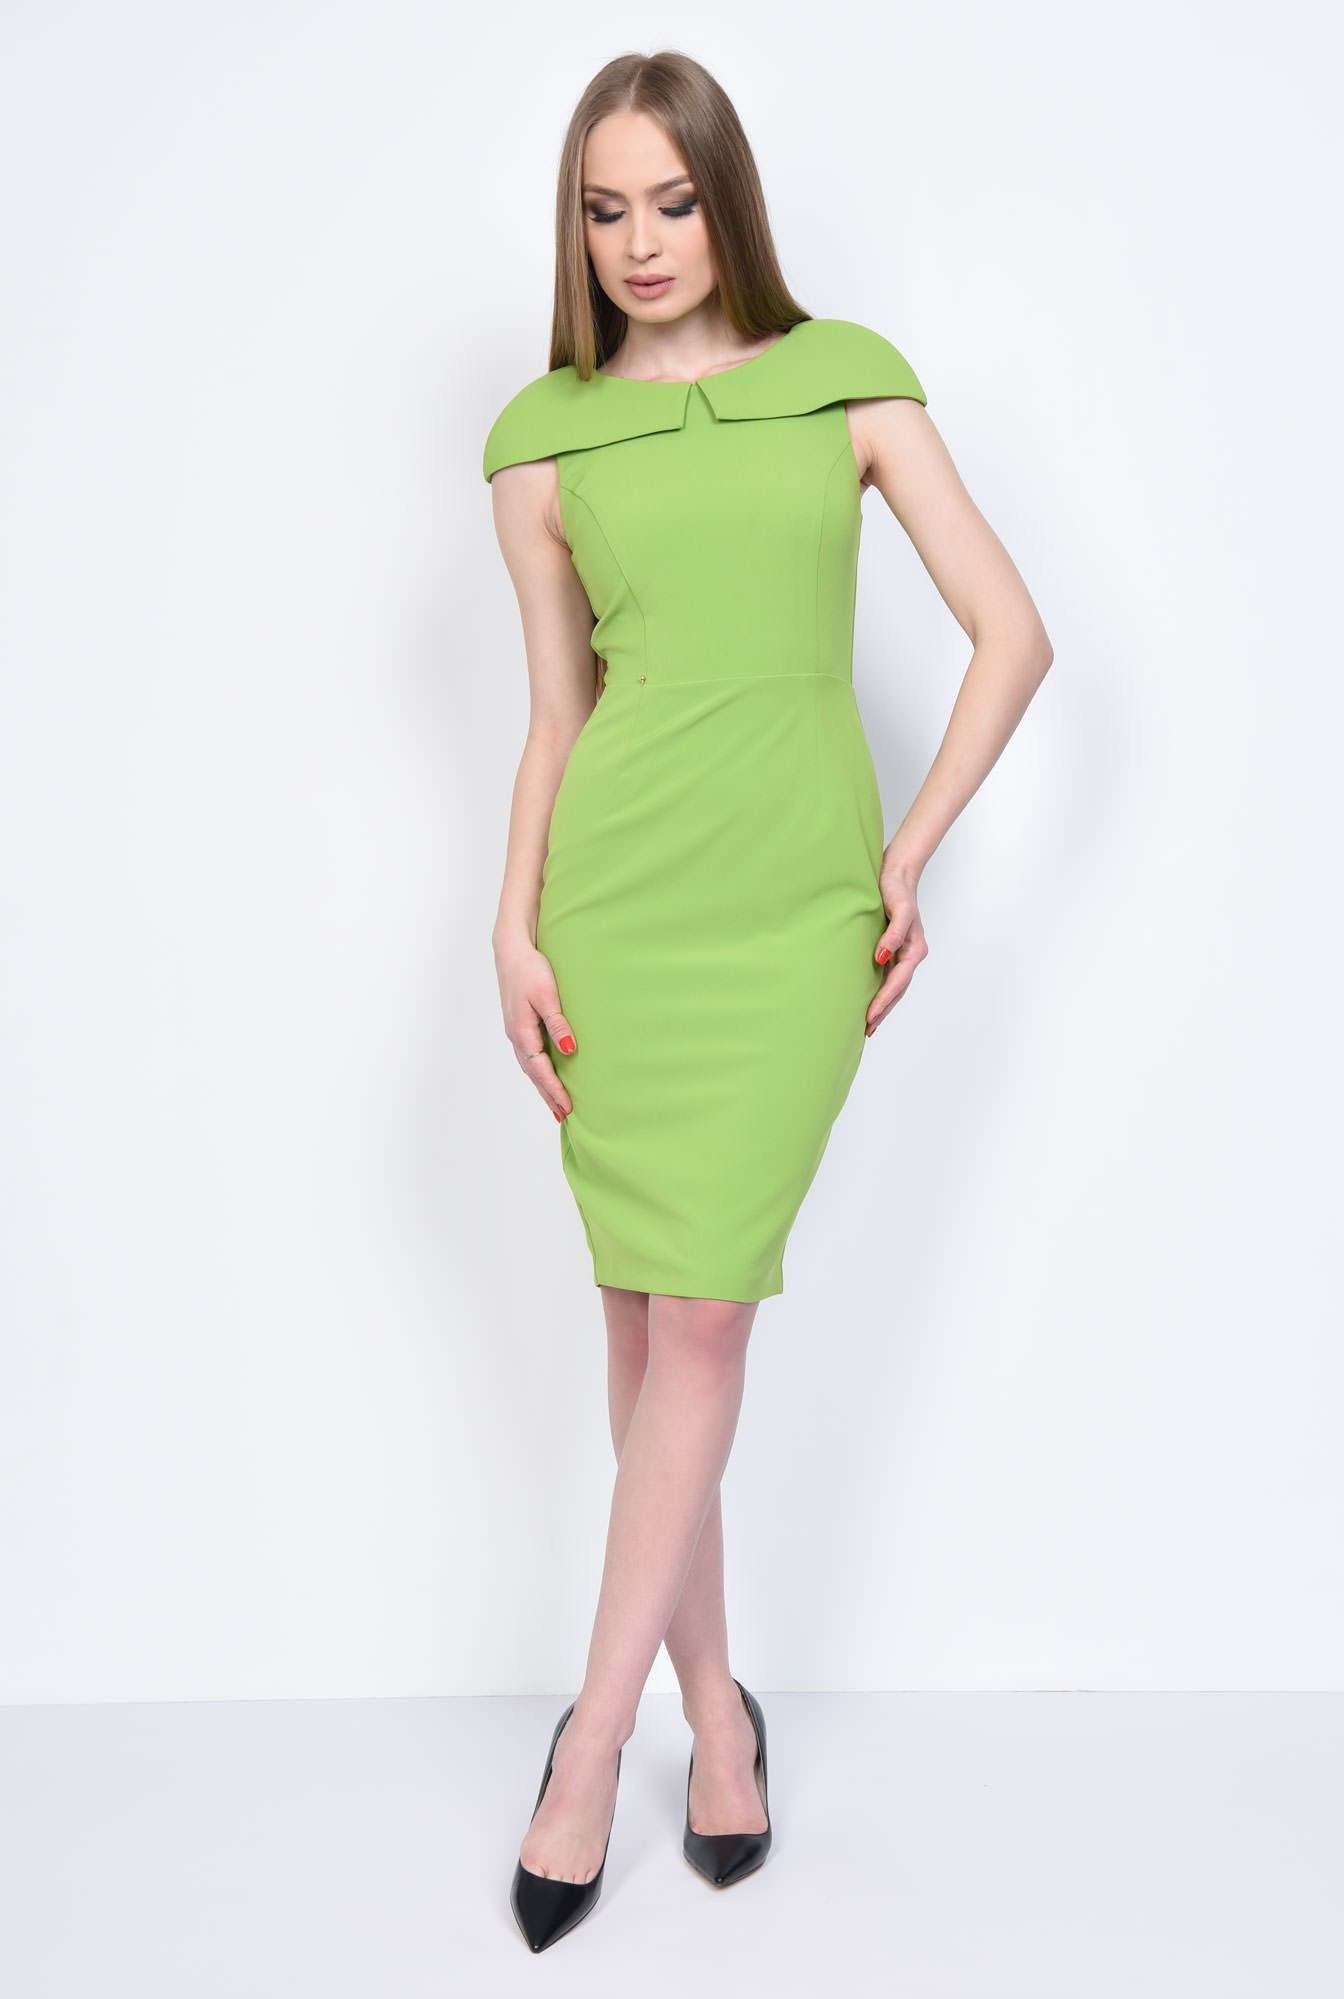 3 - ROCHIE OFFICE CONICA R 262-VERDE